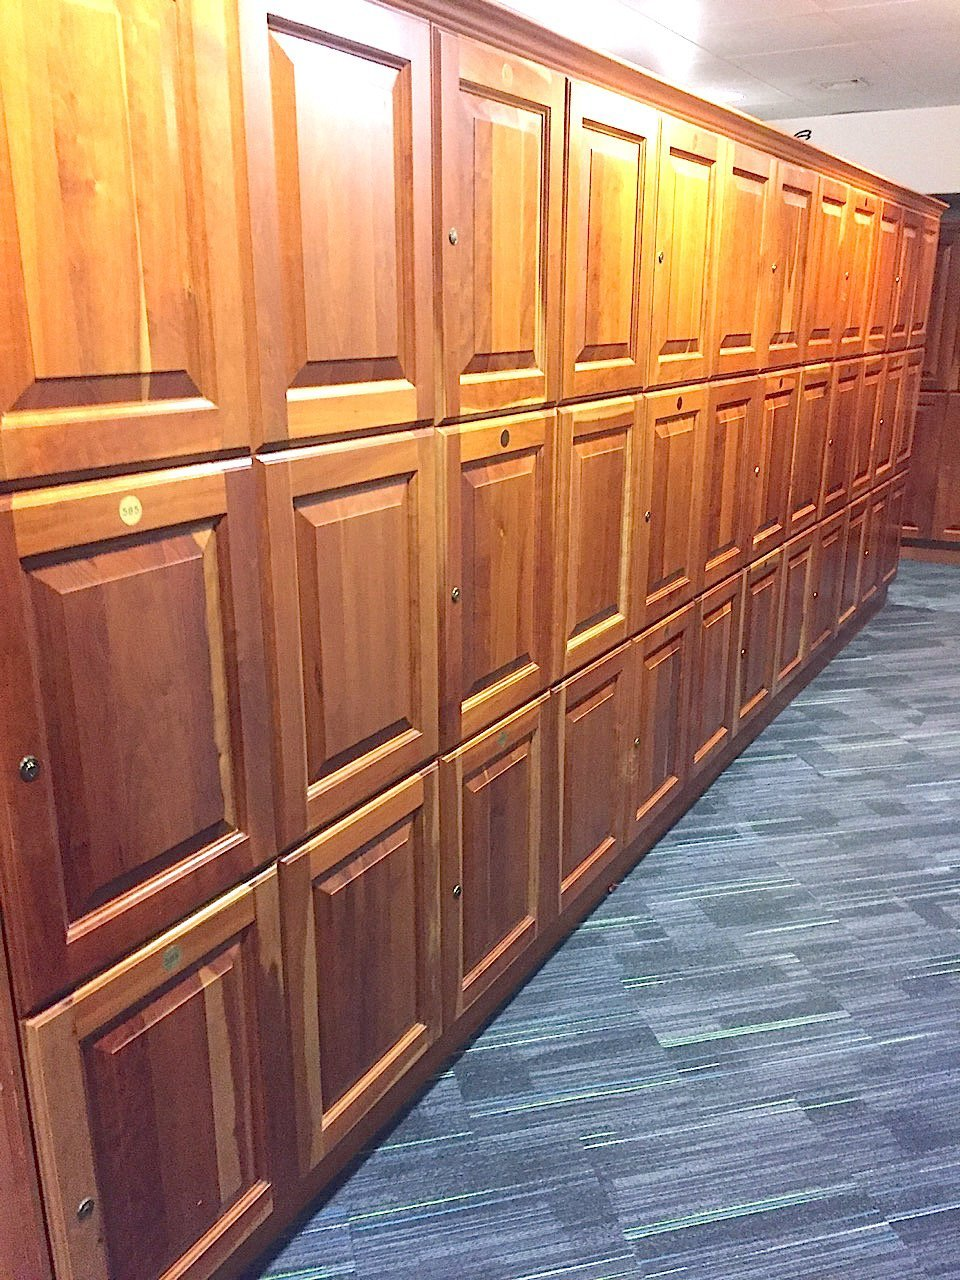 -and-an-executive-looking-locker-room-with-wood-panelling